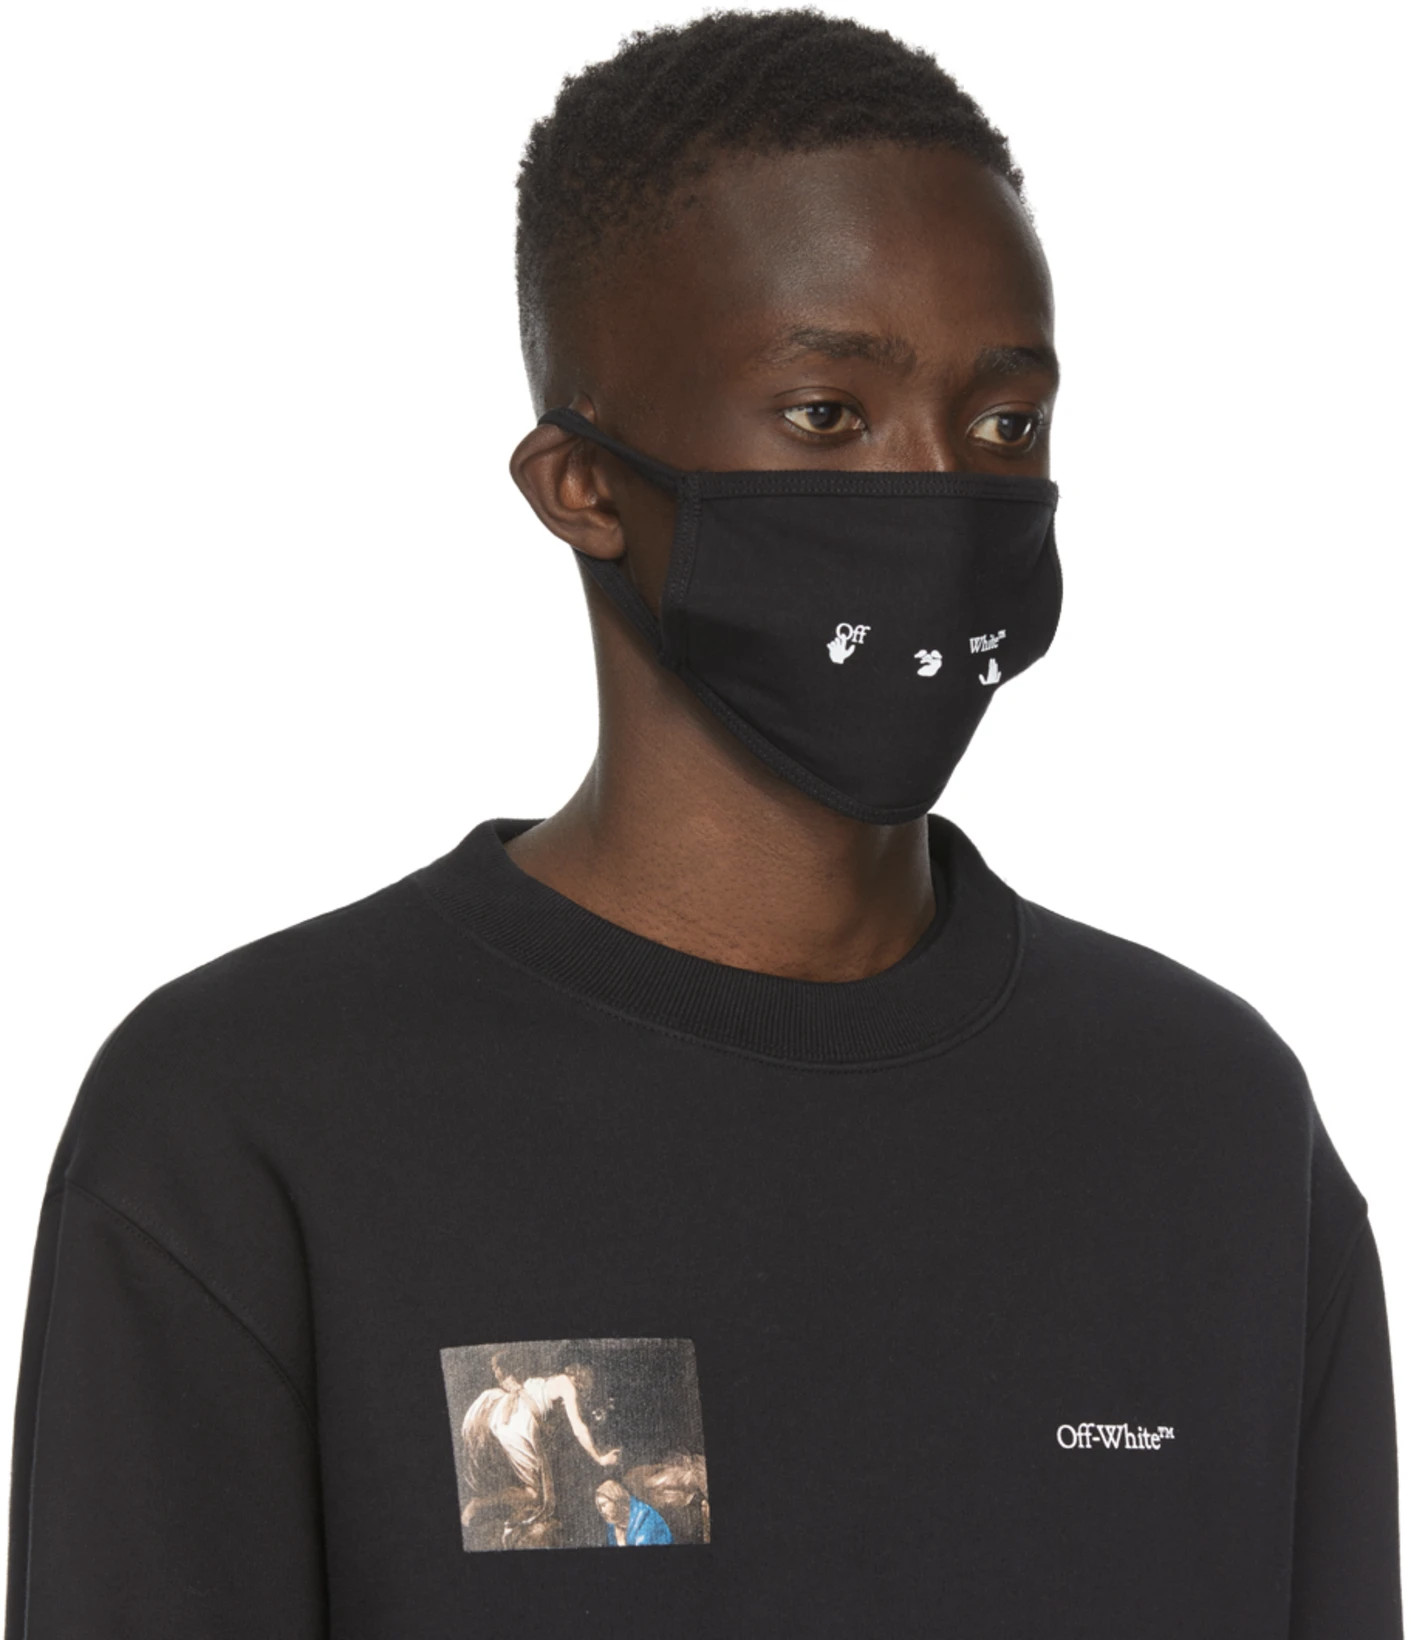 Off-White face mask nuovo logo